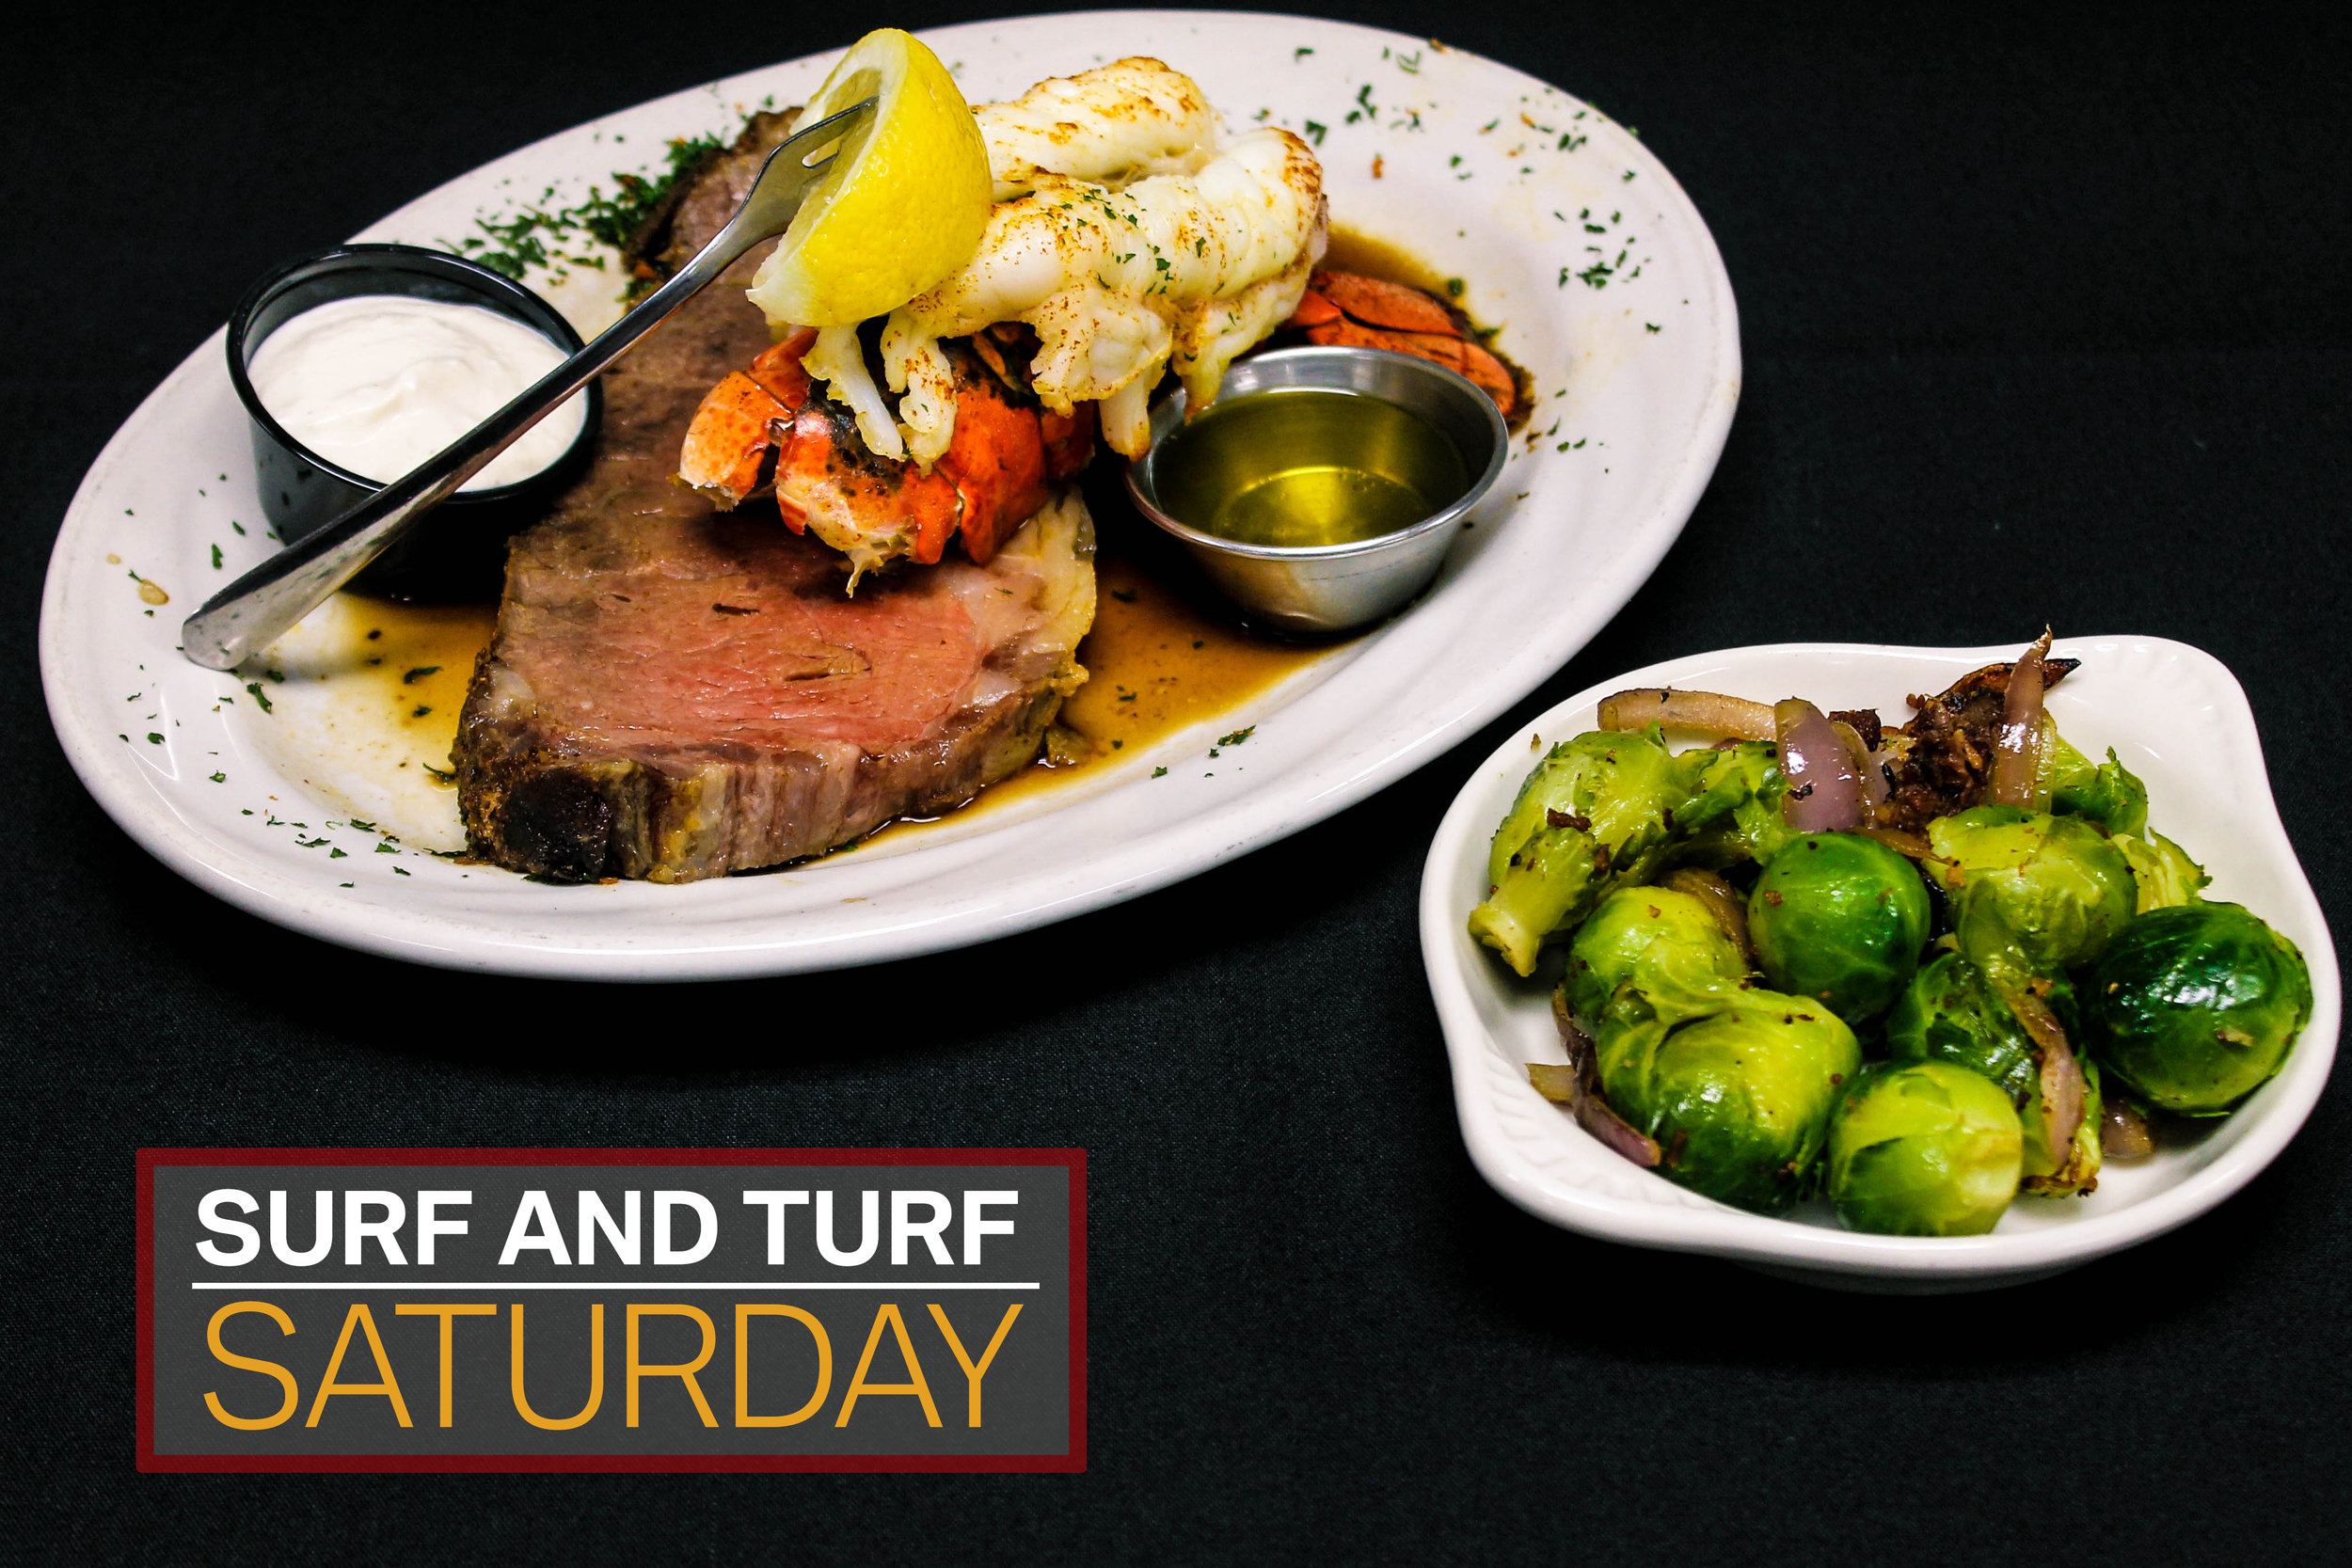 Saturday  Surf & Turf (7 oz. Lobster tail & 8 oz. Prime rib) $29.95  3 P.M. - 11 P.M.